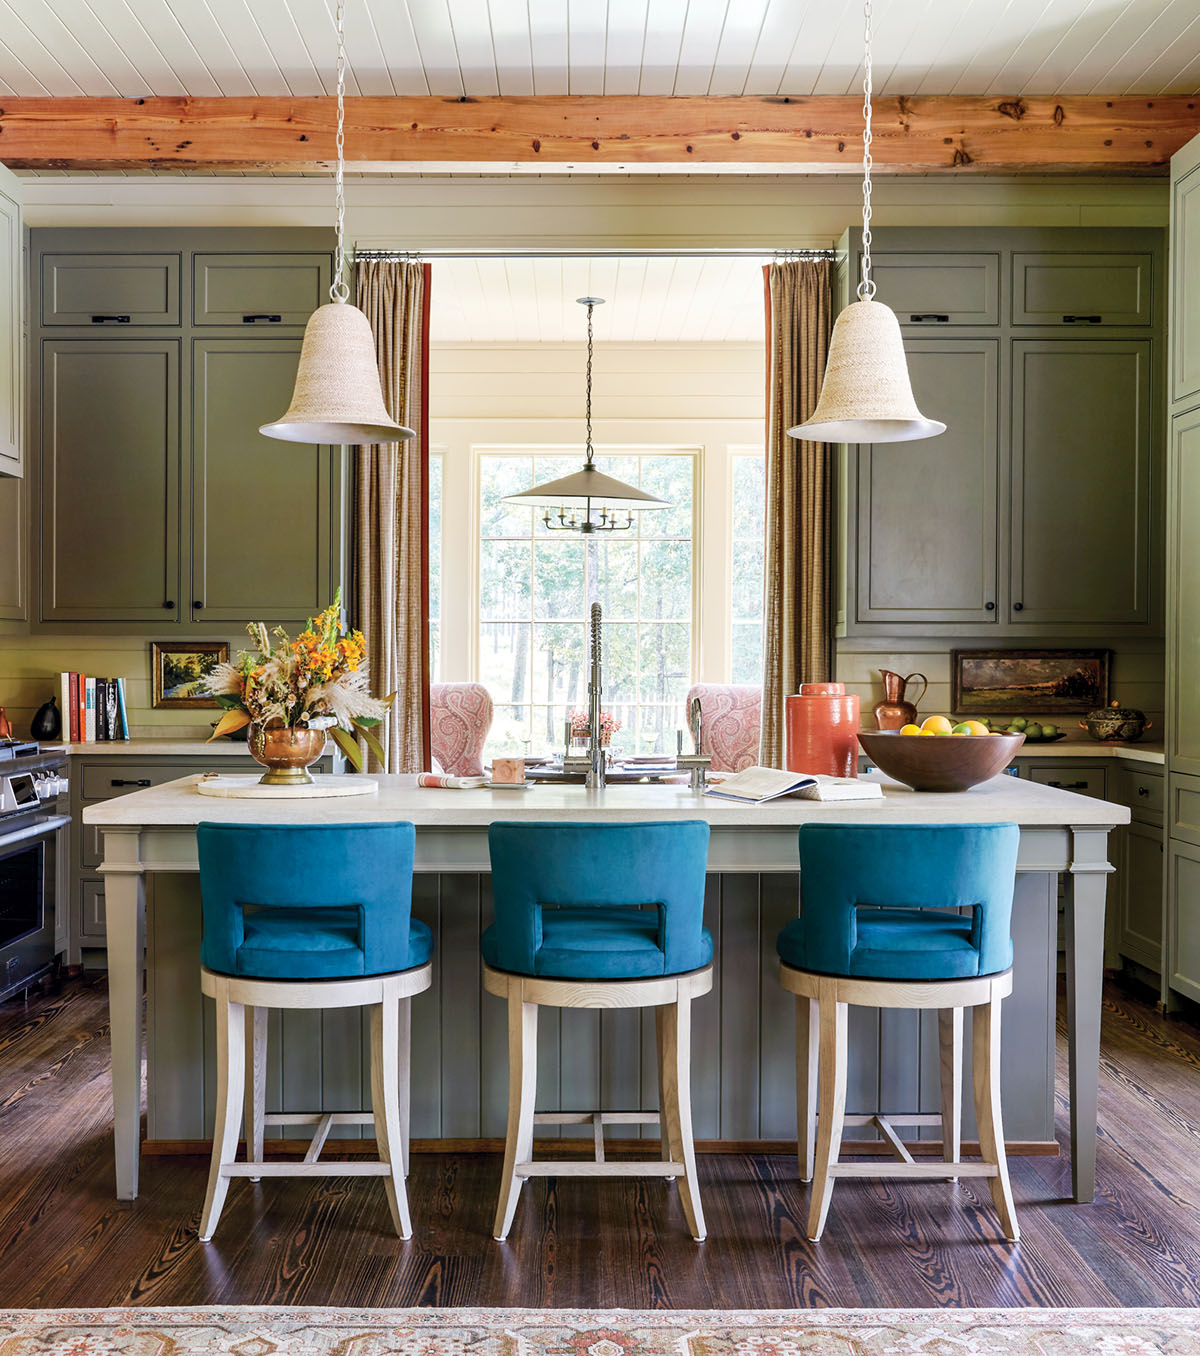 Flower magazine showhouse at Brierfield, kitchen island, cabinetry